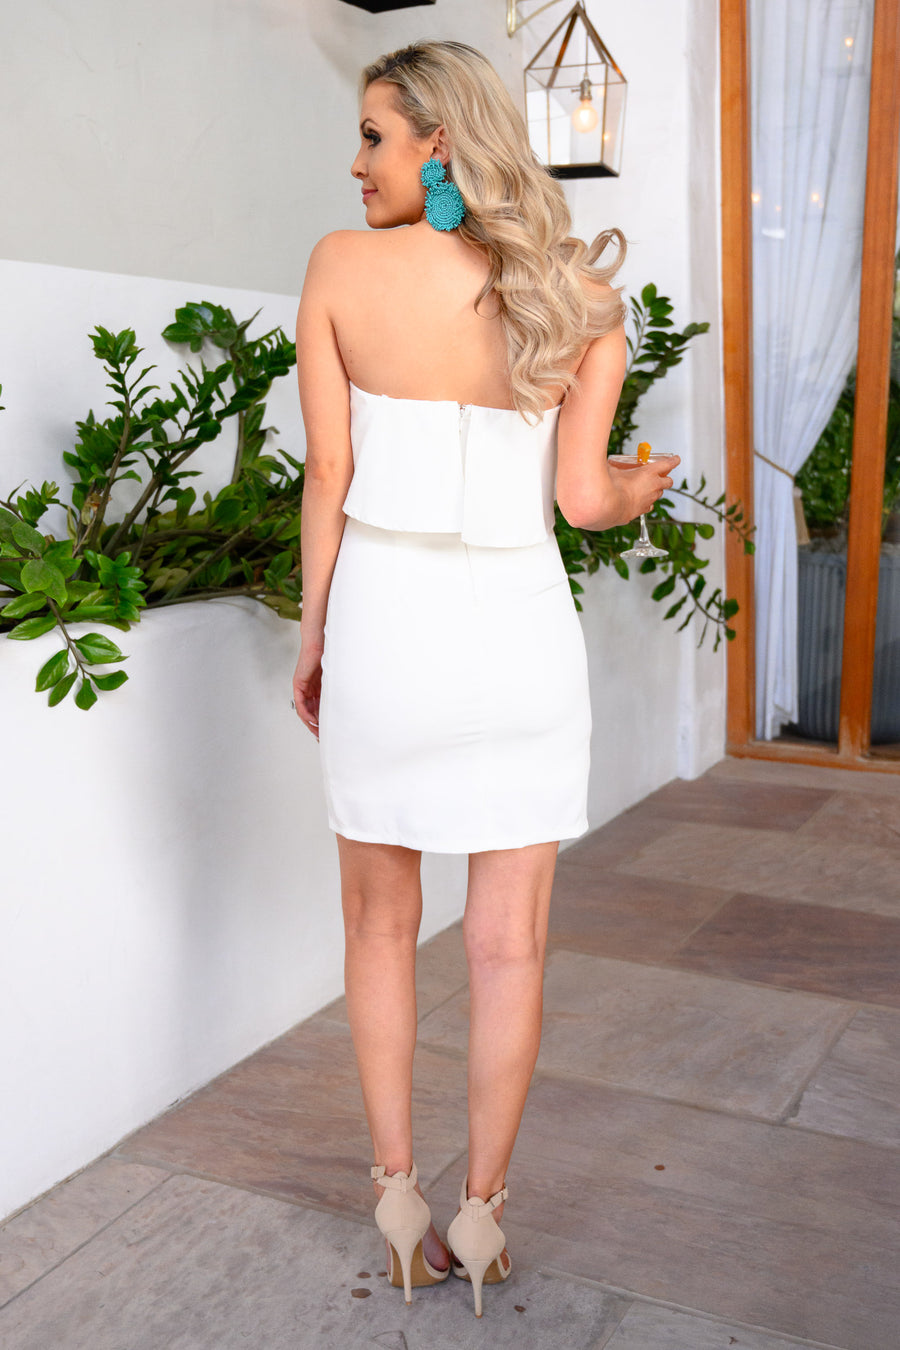 Secret Rendezvous Strapless Dress - White women's strapless party dress, Closet Candy Boutique 1